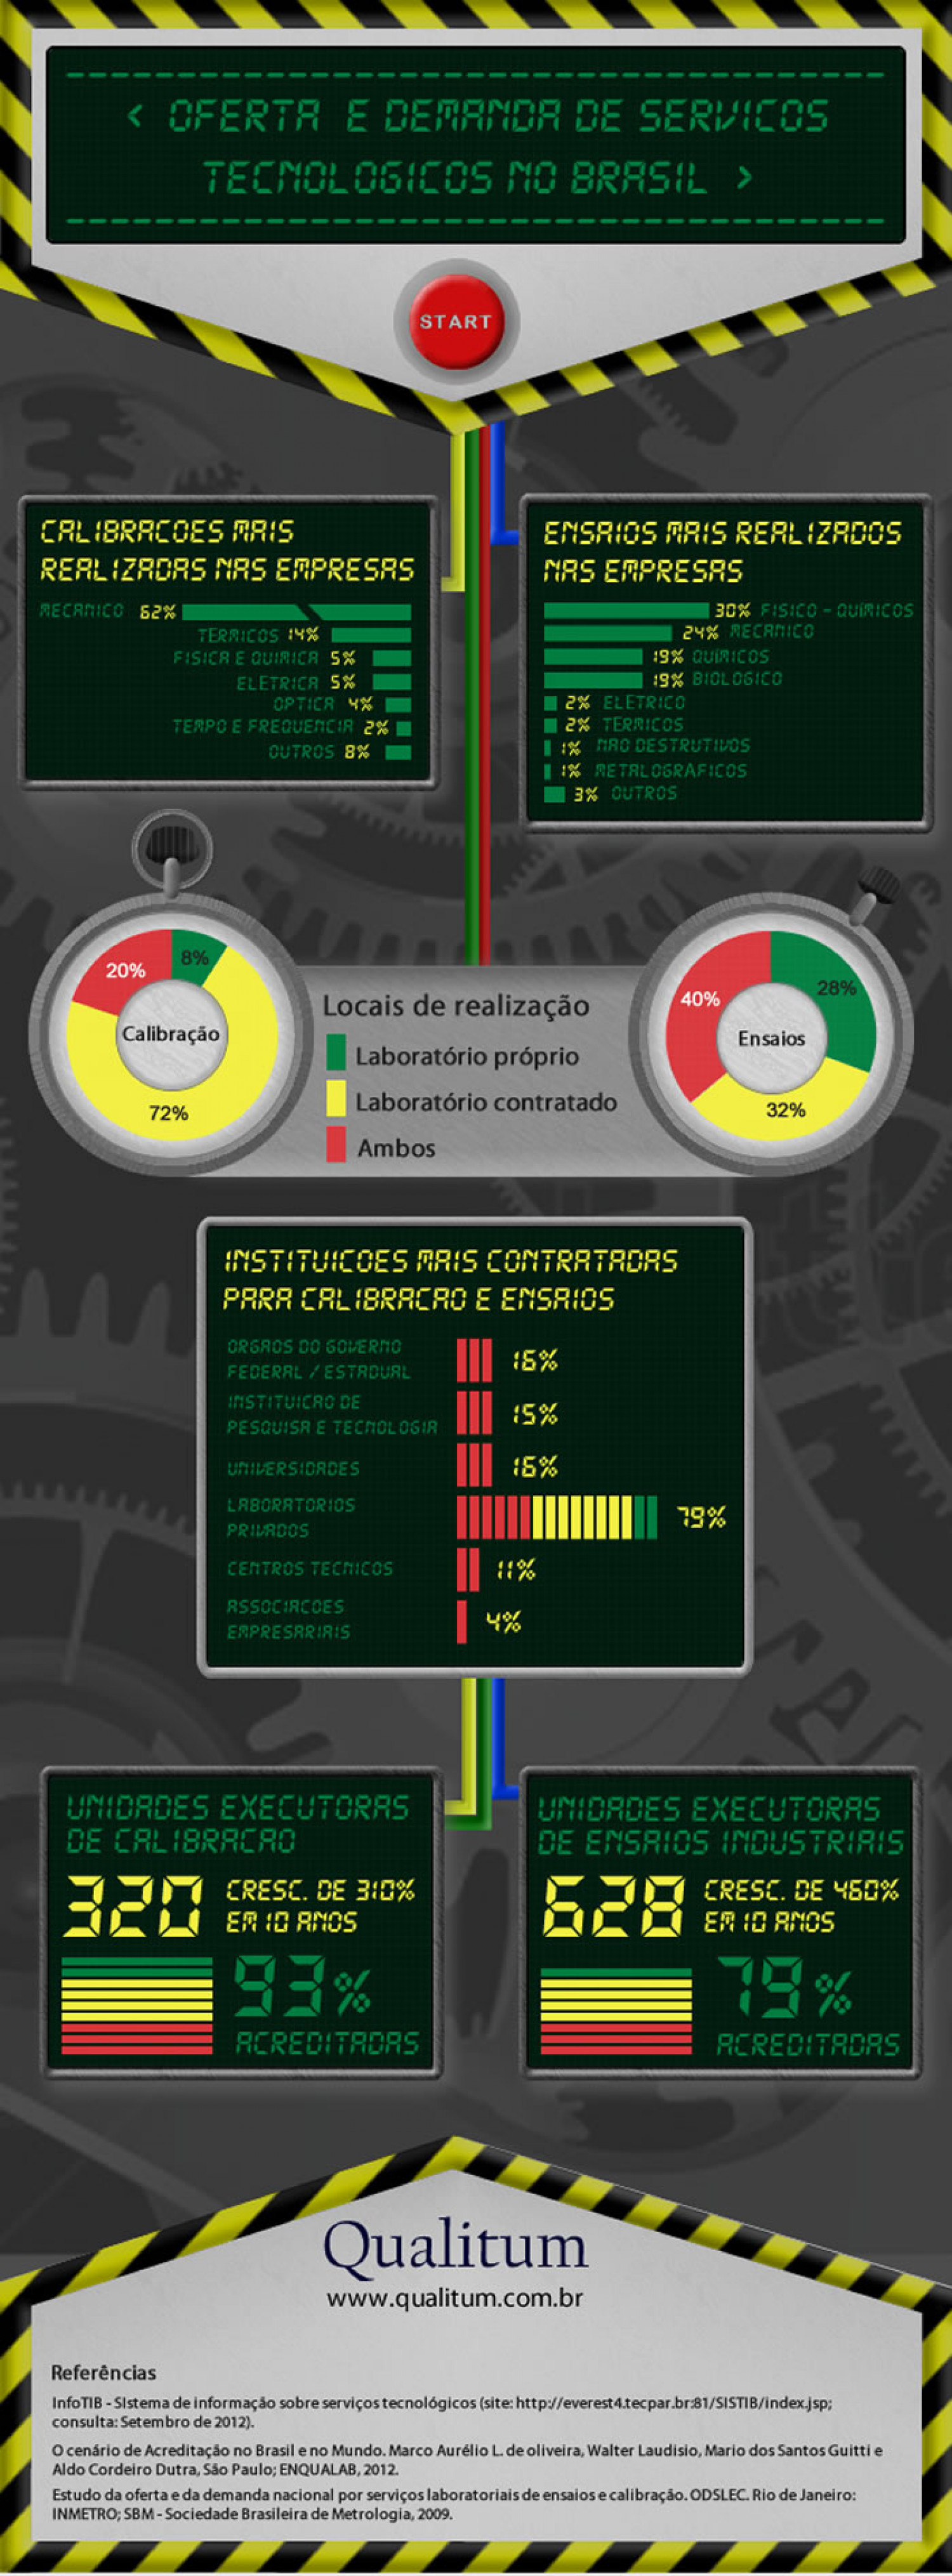 Brazilian Calibration and Laboratory market Infographic